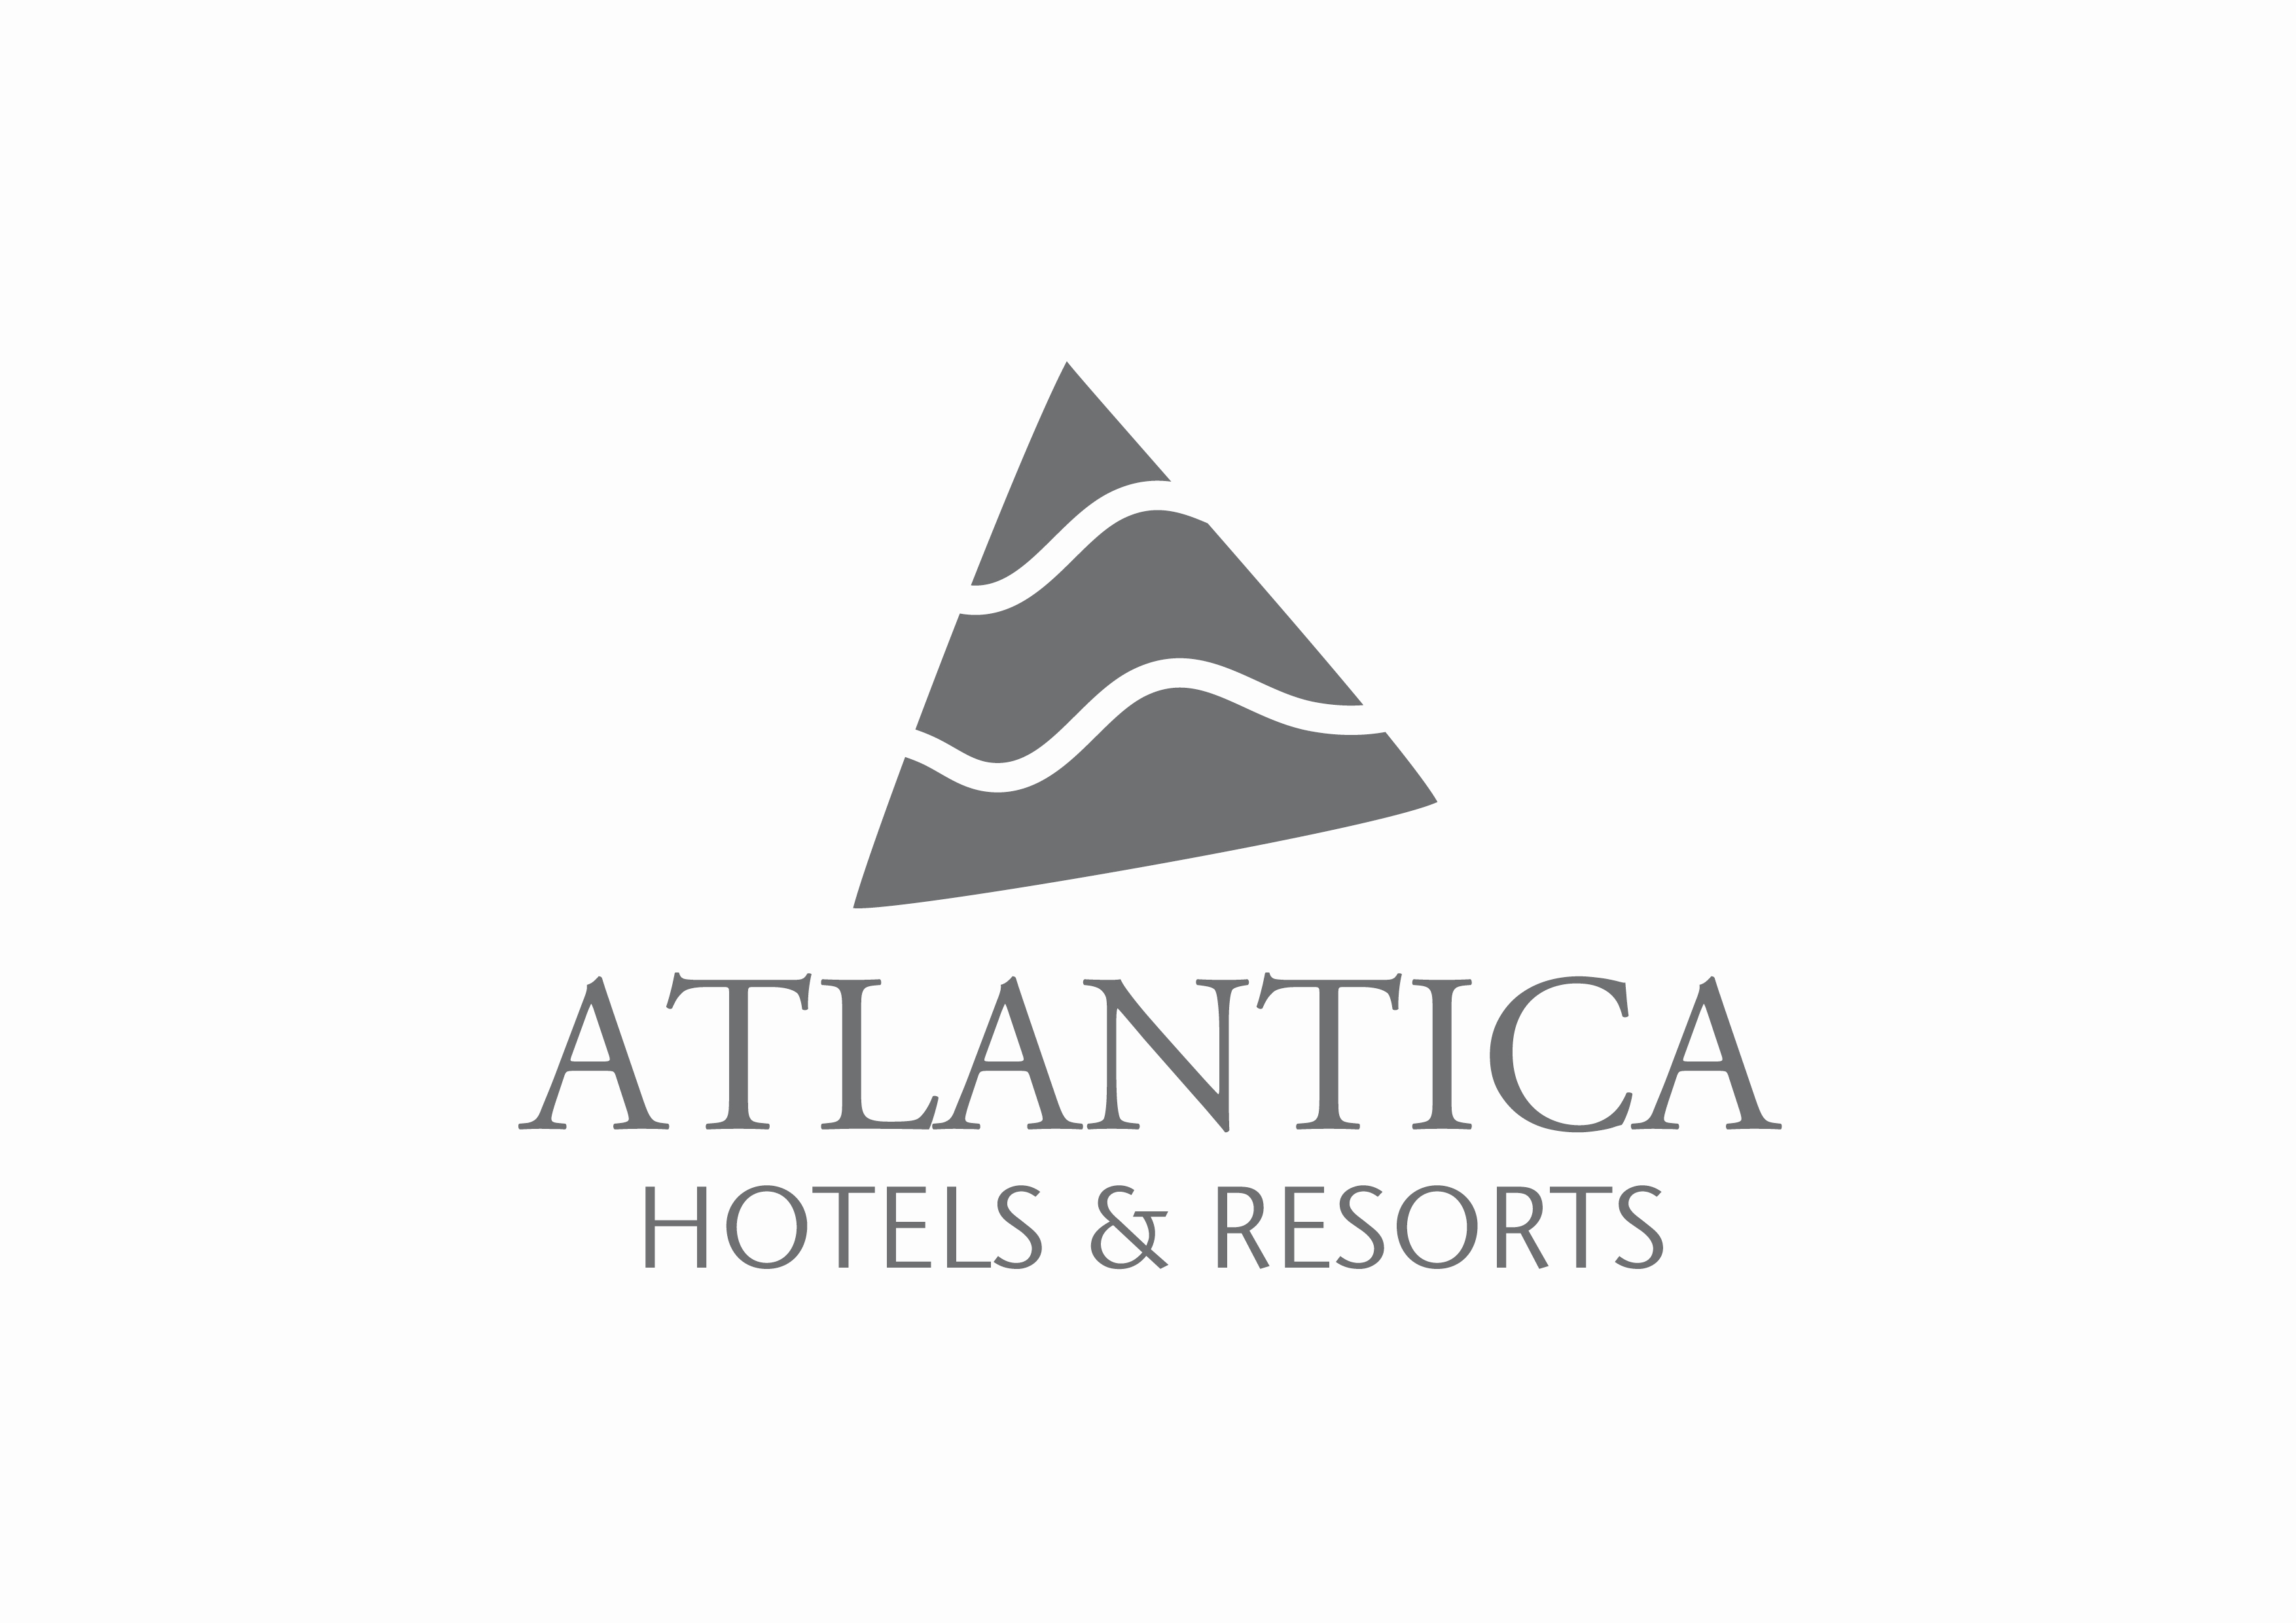 4.Atlantica Hotels and Resorts